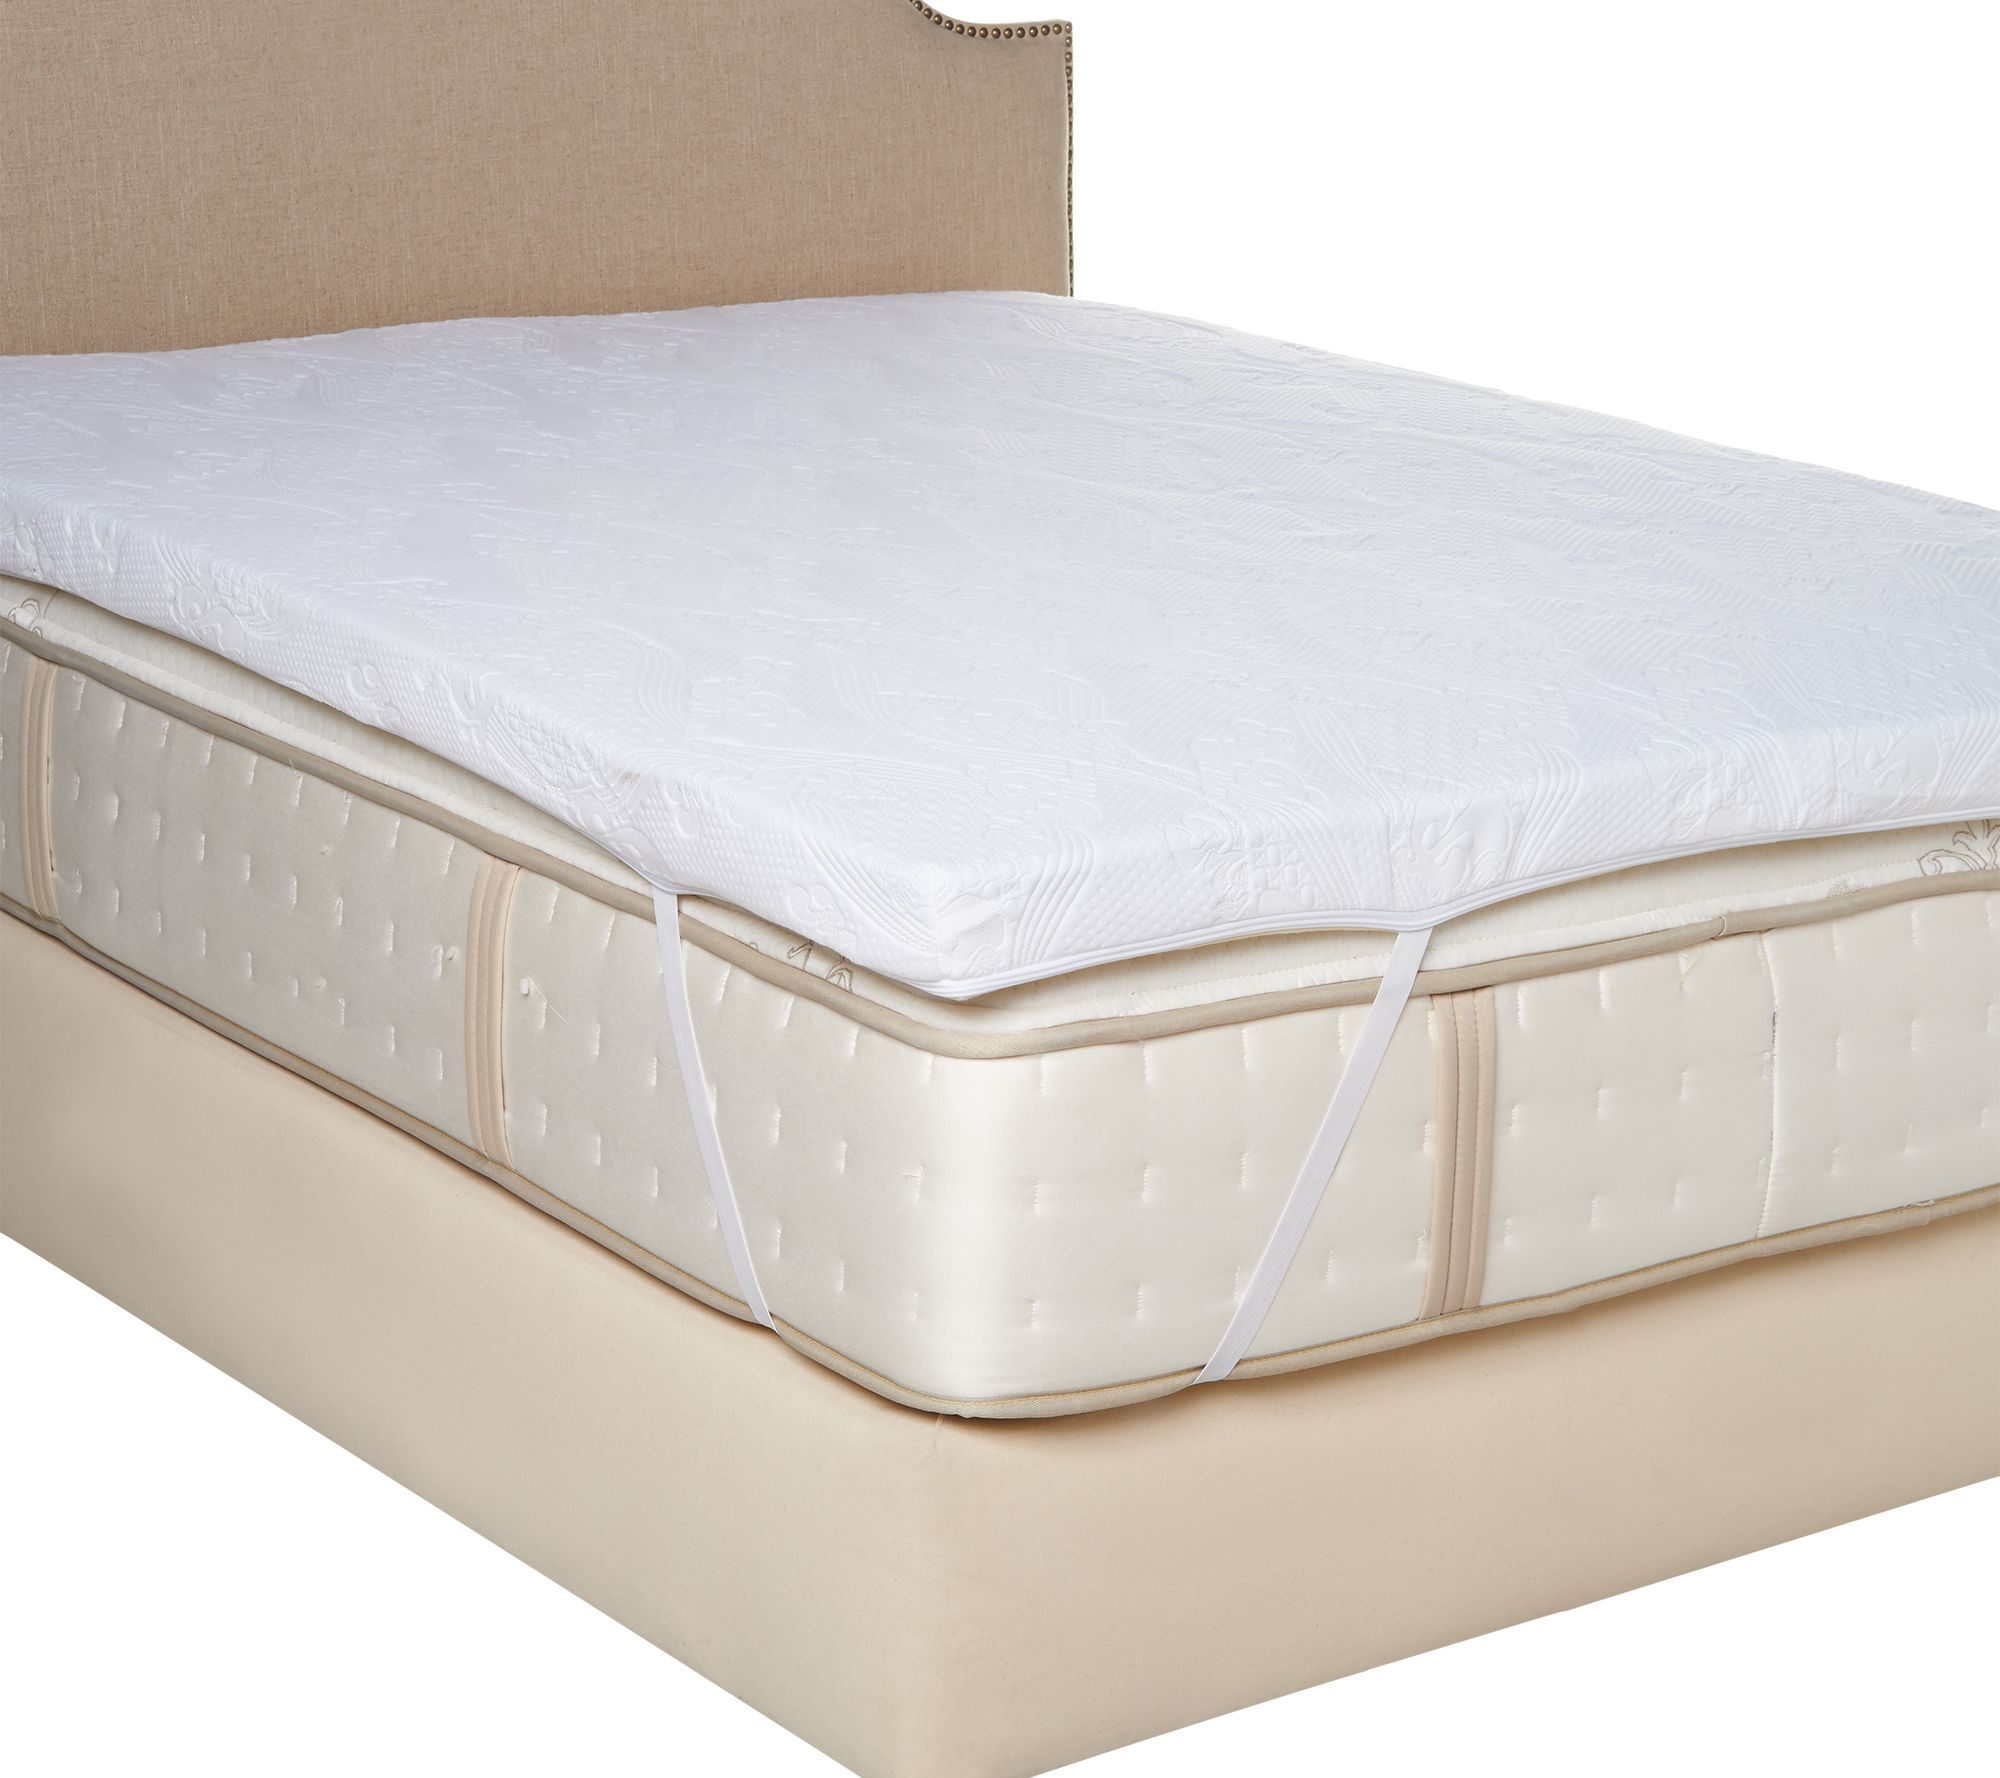 quilted topper deep cotton mattress pad homescapes protector